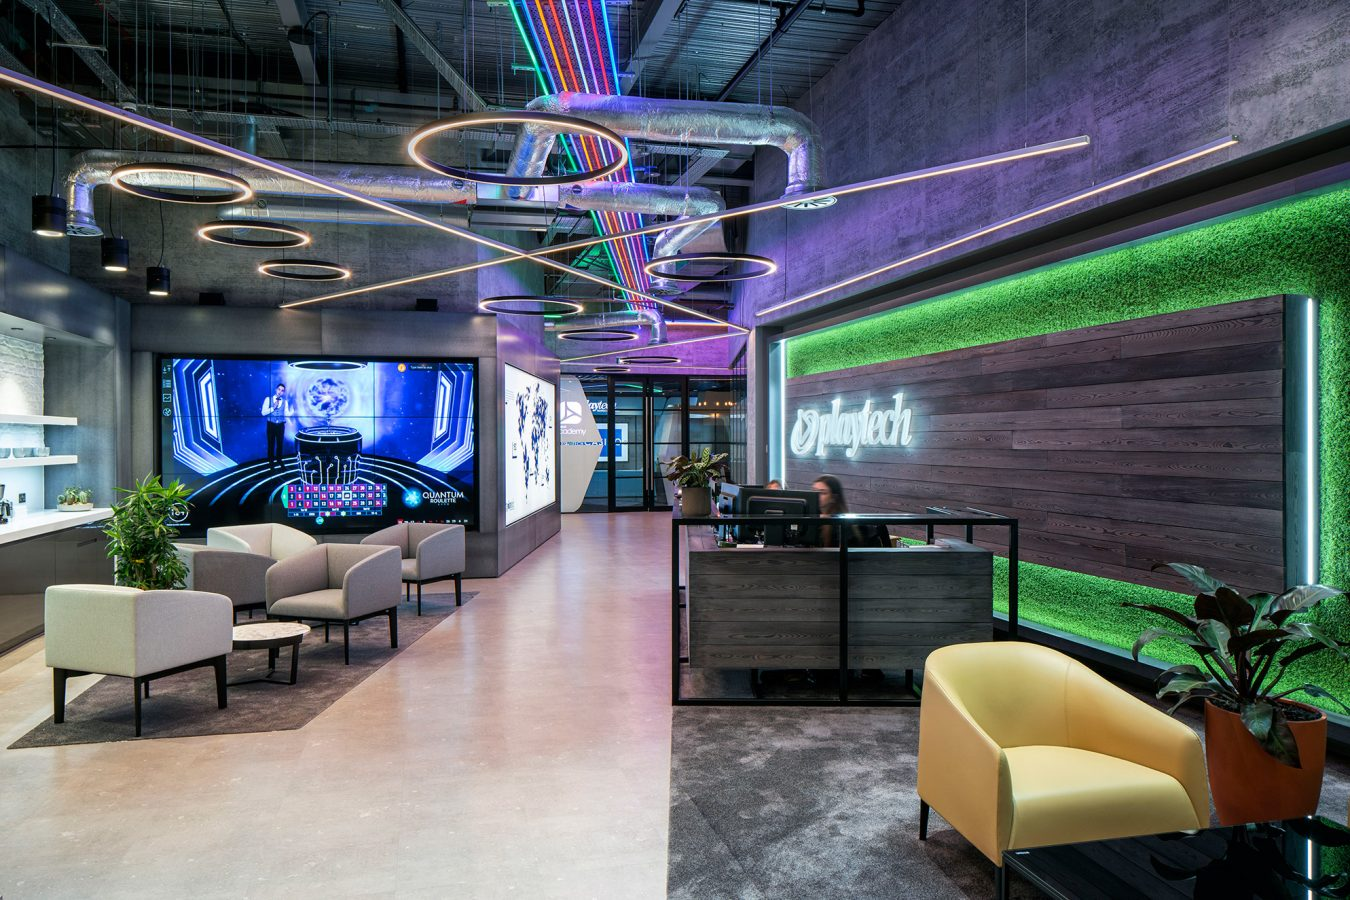 Industrial interior design for Playtech reception, decorated with coloured way finding LED lights, minimal furniture design and opulent carpet.